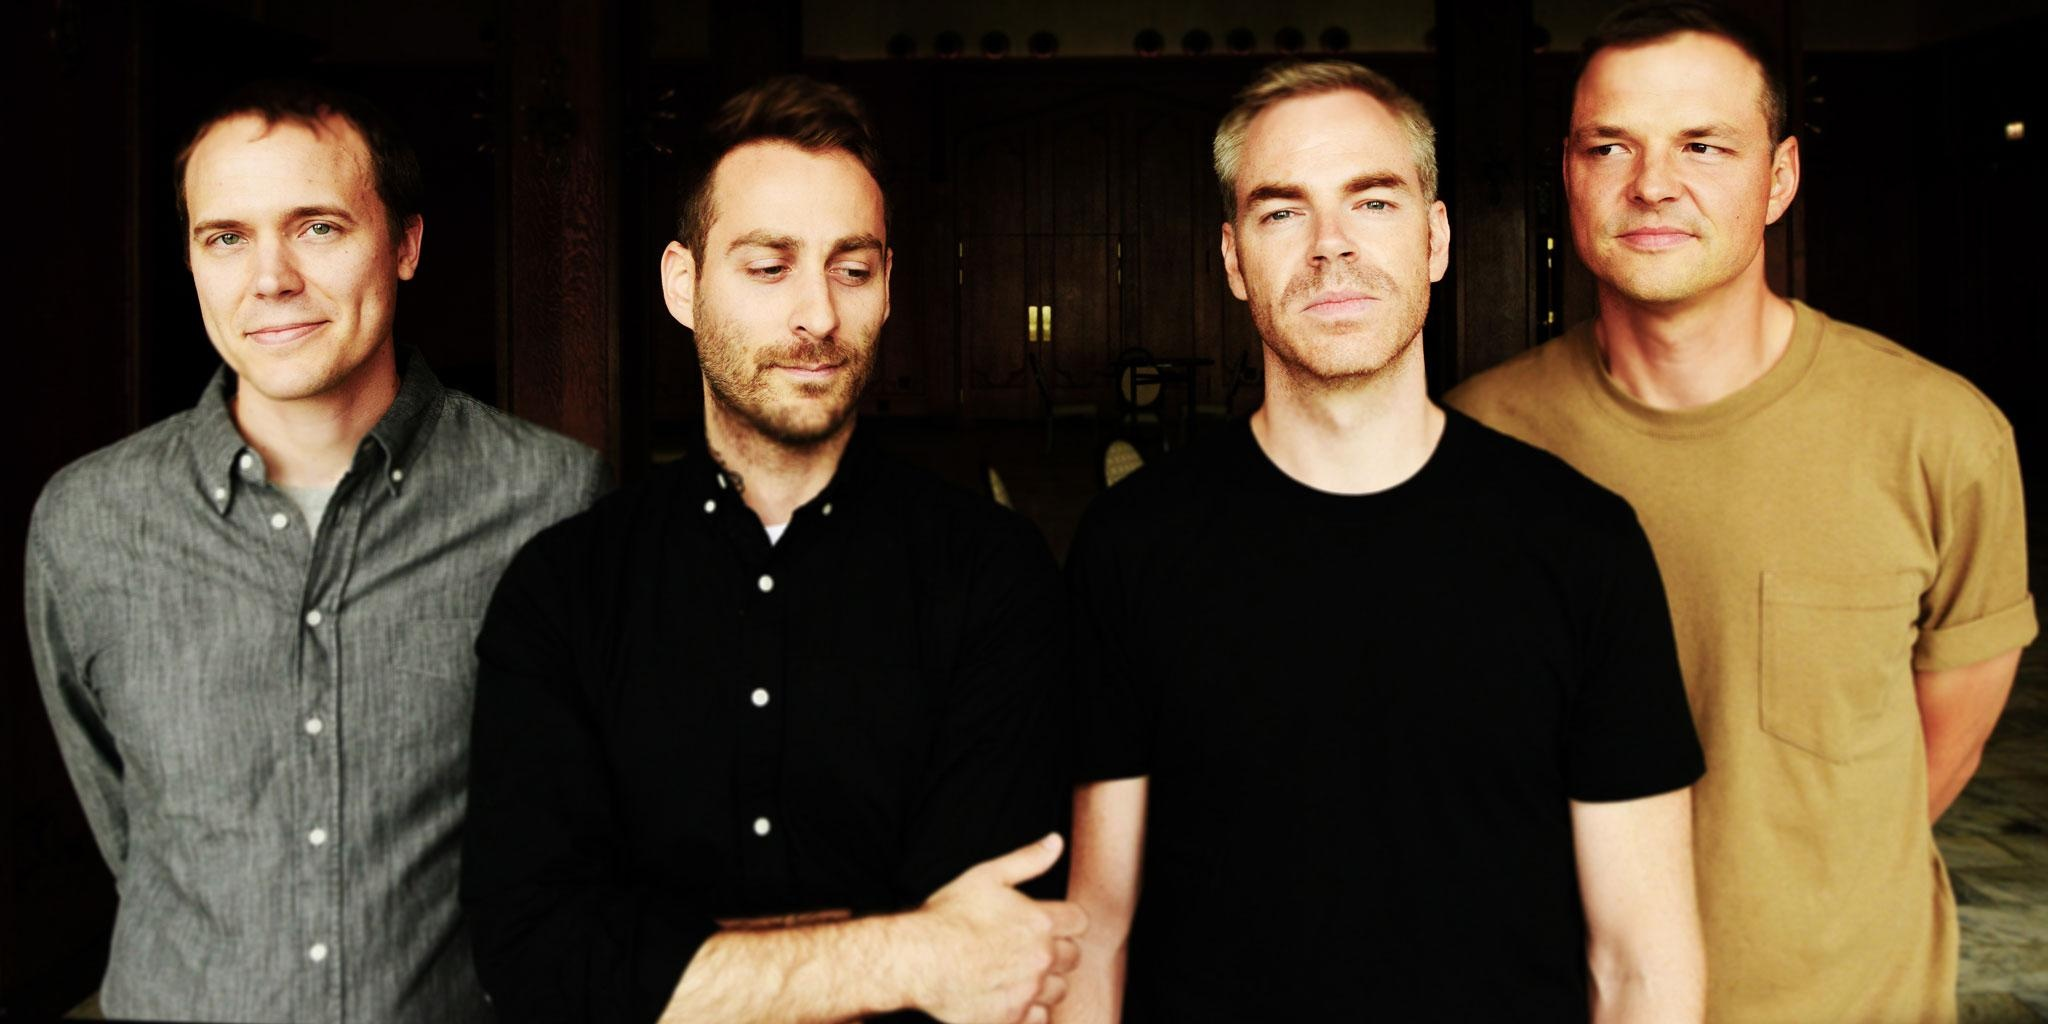 American Football perform with a children's choir for NPR's Tiny Desk concert – watch